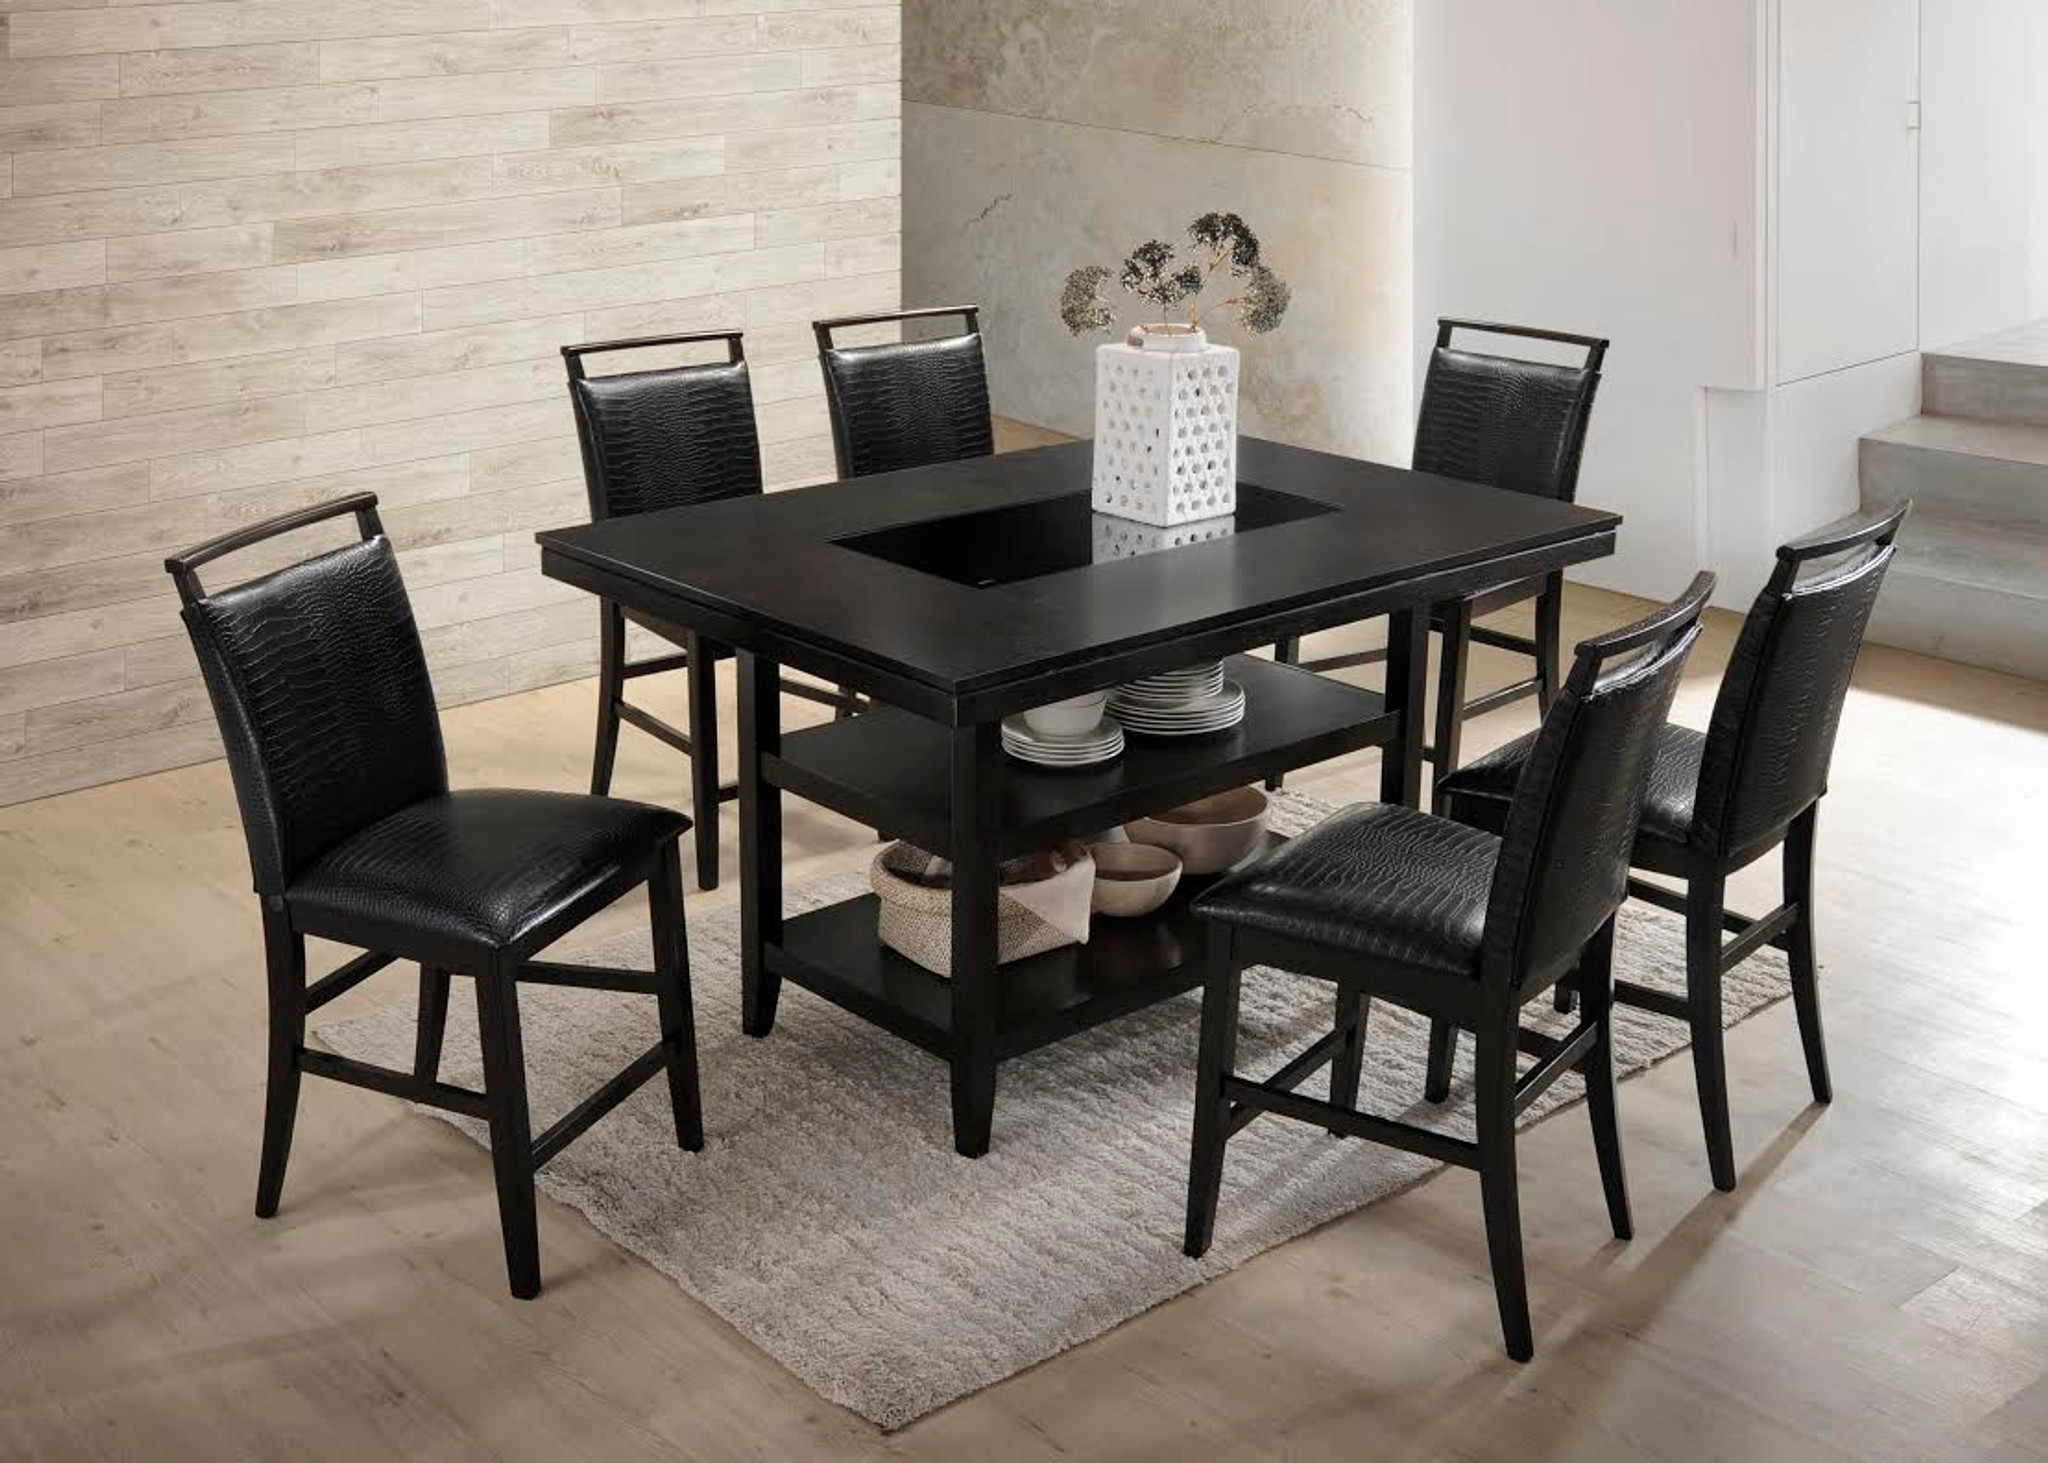 Picture of: 7pcs Black Counter Height Dining Table Set Black Crocodile Upholstery Km Home Furniture